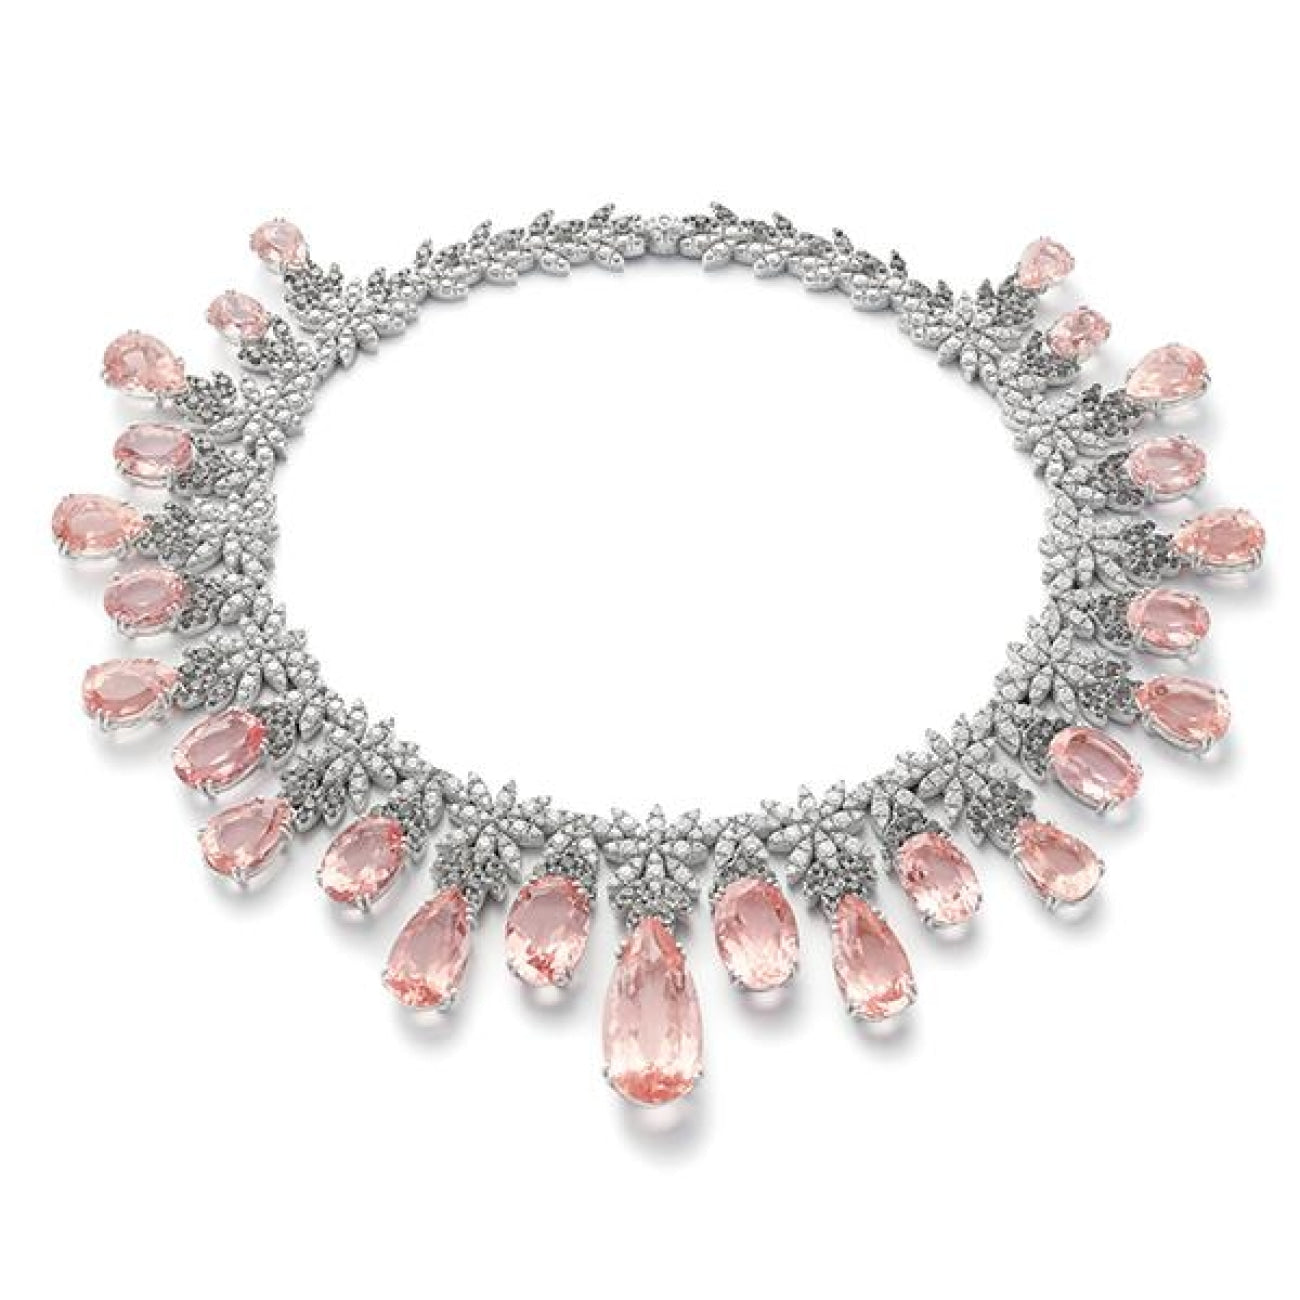 Pasquale Bruni Jewelry - Ghirlanda Haute Couture Necklace | Manfredi Jewels